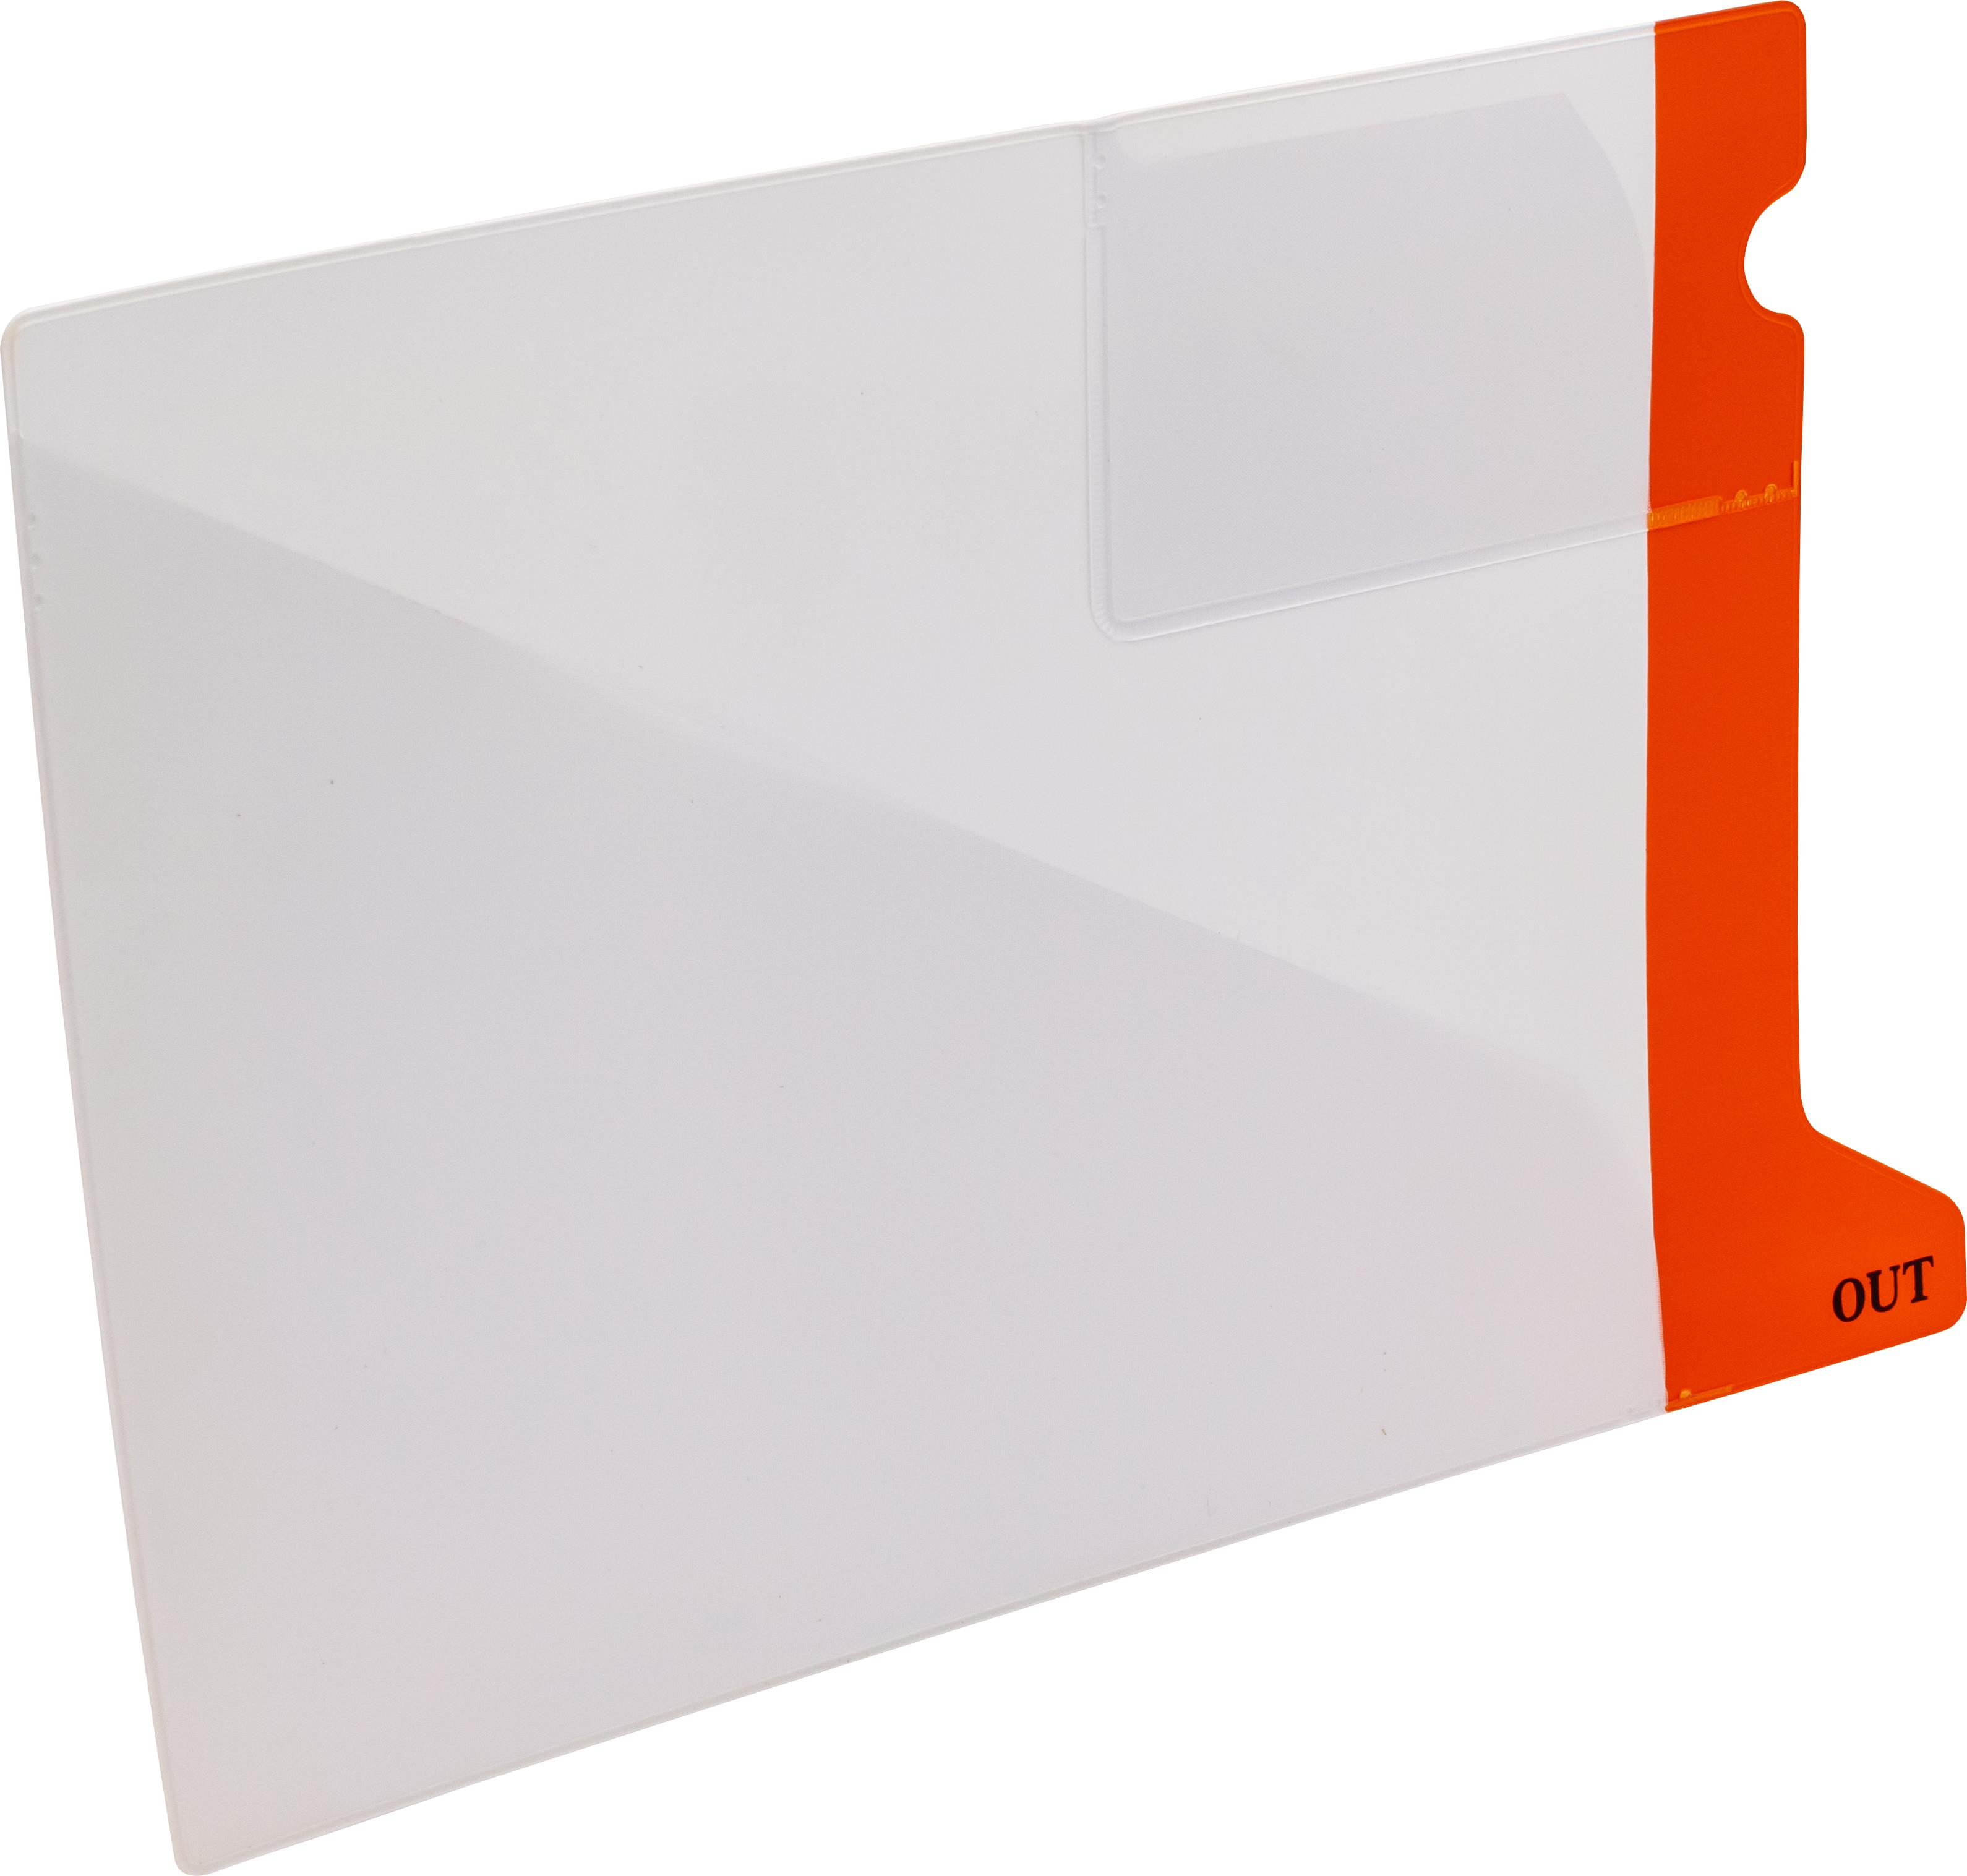 TABCOLOR-OUT-Mappe mit Taschen f. A4 u. A6